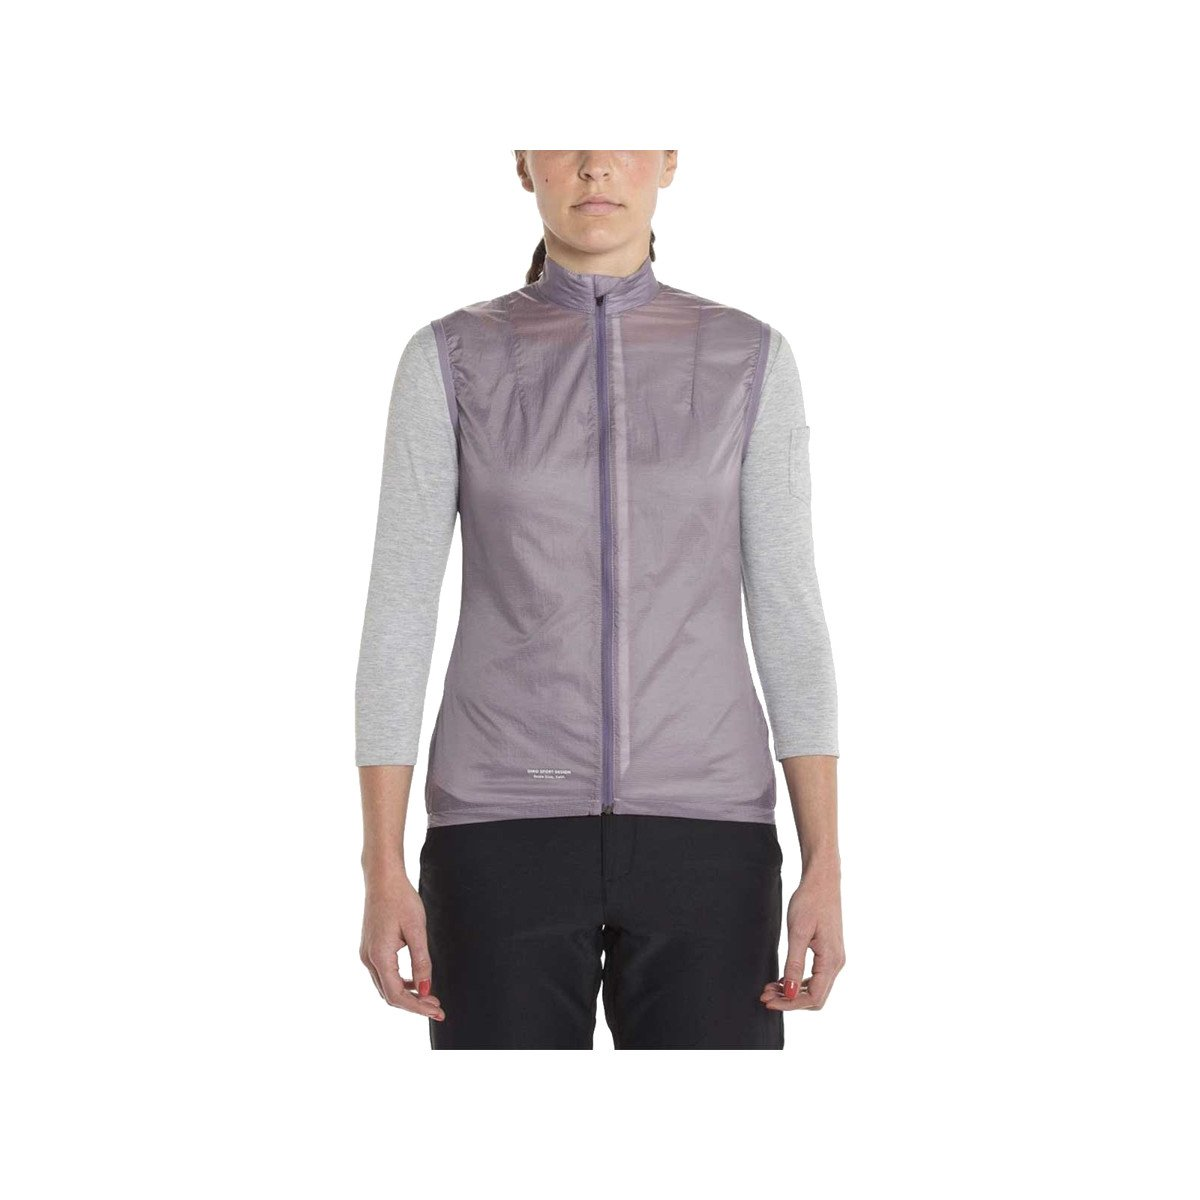 Giro Women'S New Road Wind Cycling Vest, Grey Ridge (Small)